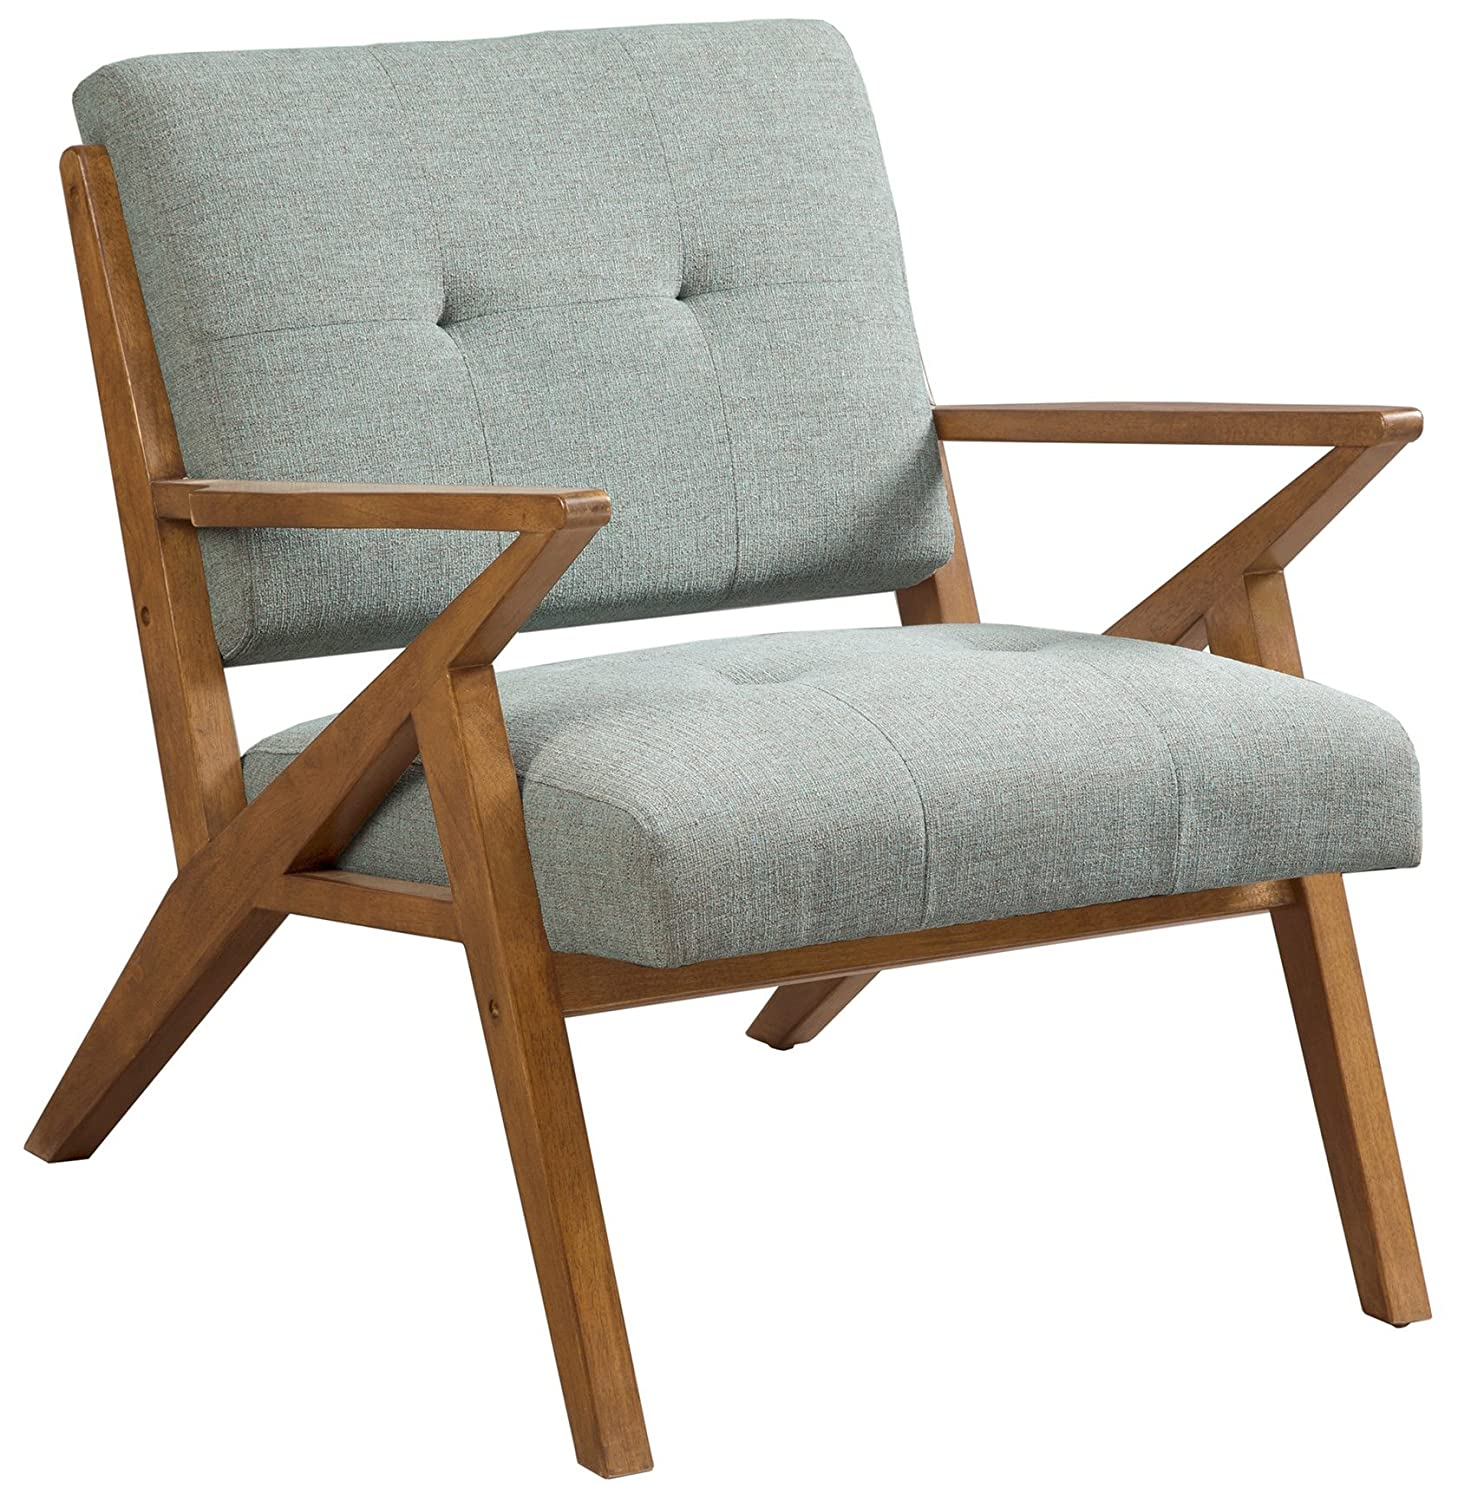 Ink+Ivy IIF18-0058 Rocket Accent Chair Mid Century Modern Tufted Styling, Solid Wood Sturdy Z-Frame Retro Style, Comfortable All Foam, Soft Fabric Bedroom Lounger, Slanted Back and Armrest, Seafoam